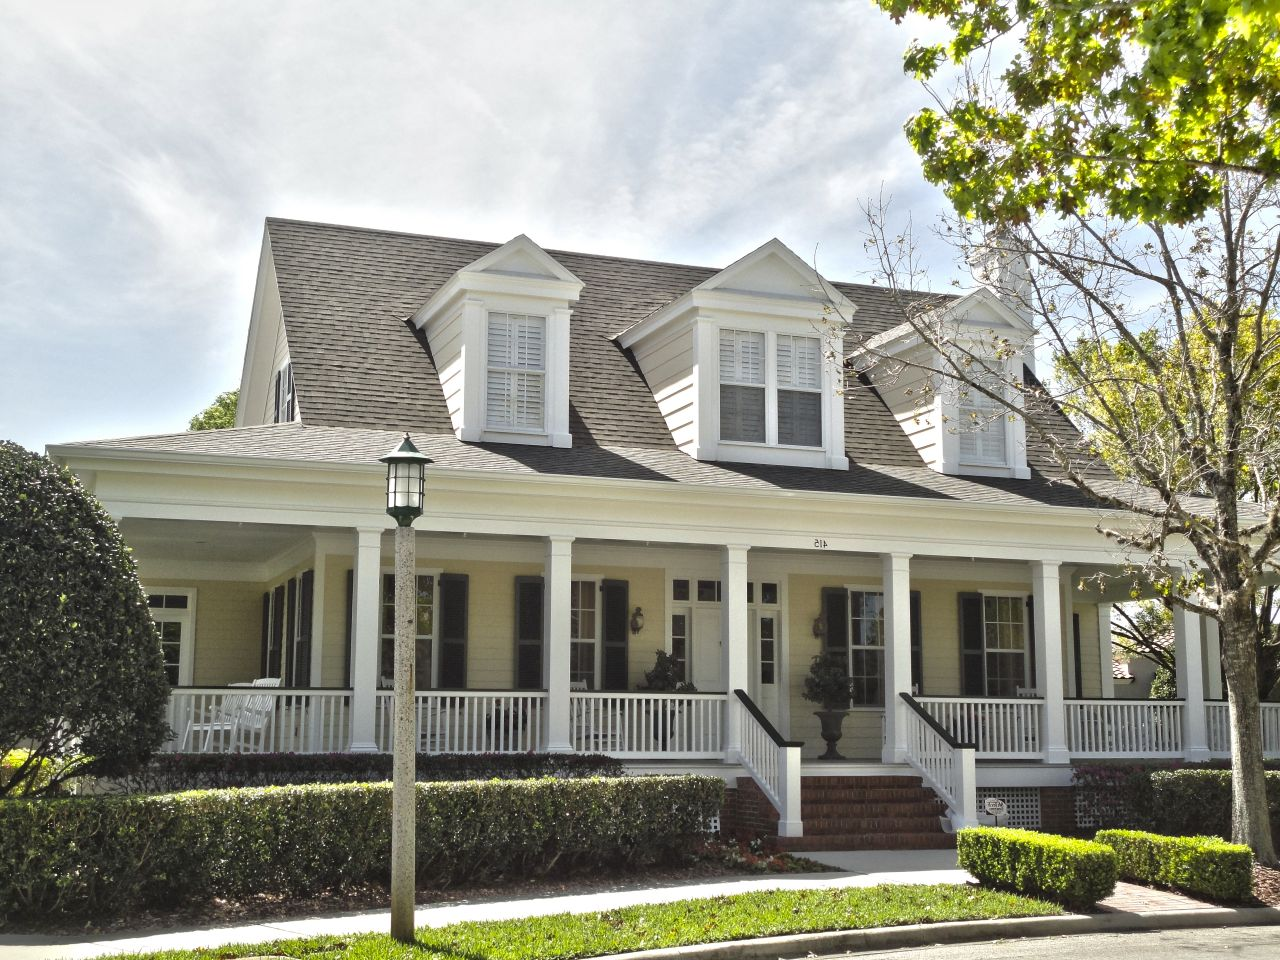 Victorian house plans with wrap around porch victorian era for Beach house designs with wrap around porch